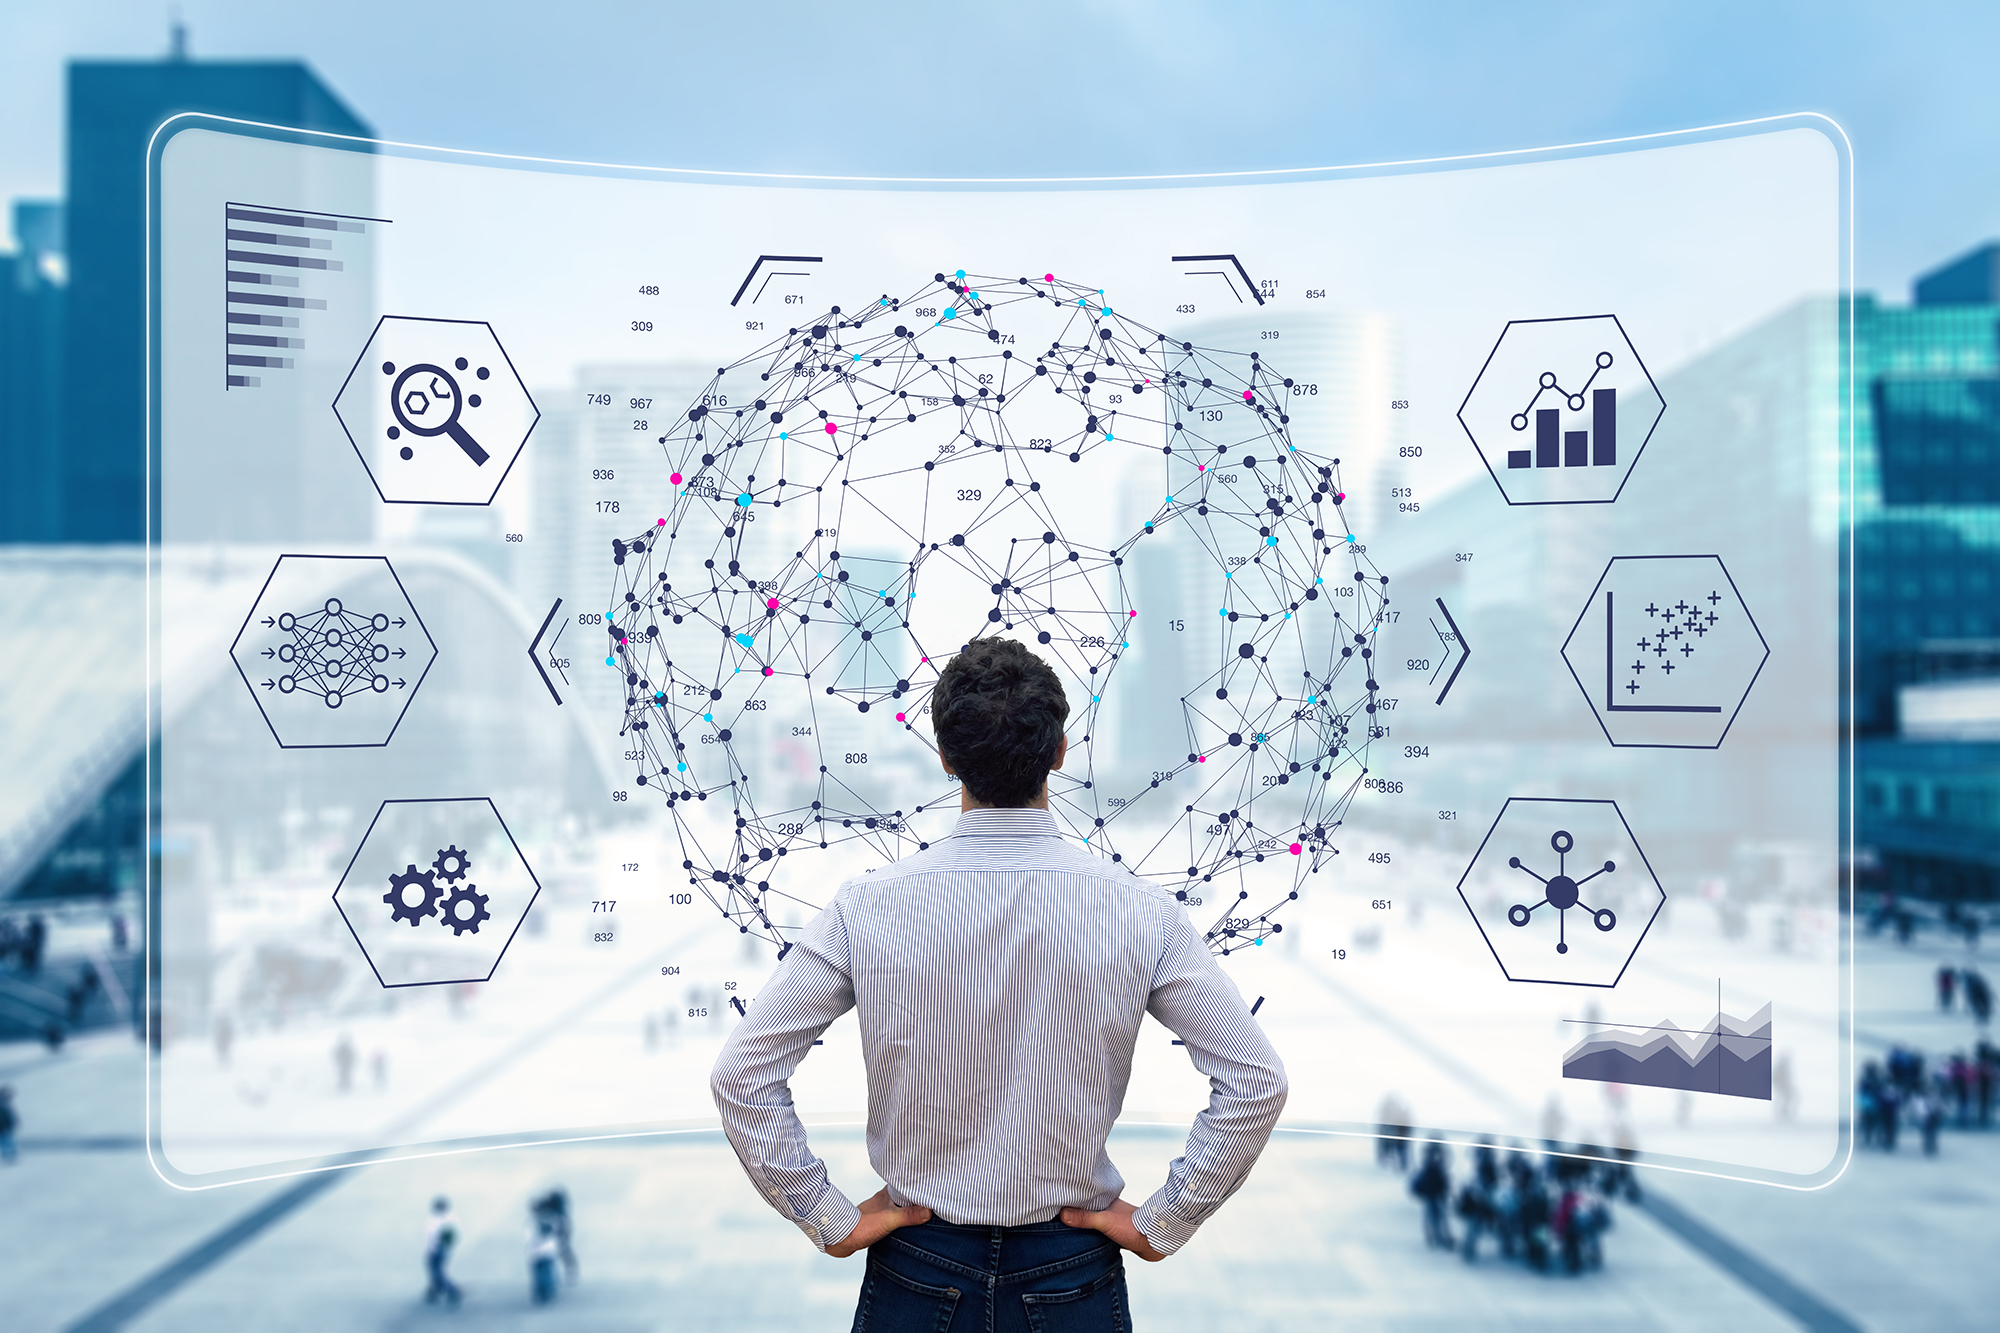 Digital transformation has redefined the way health organizations approach care team collaboration, virtual health and remote monitoring, and security and compliance.